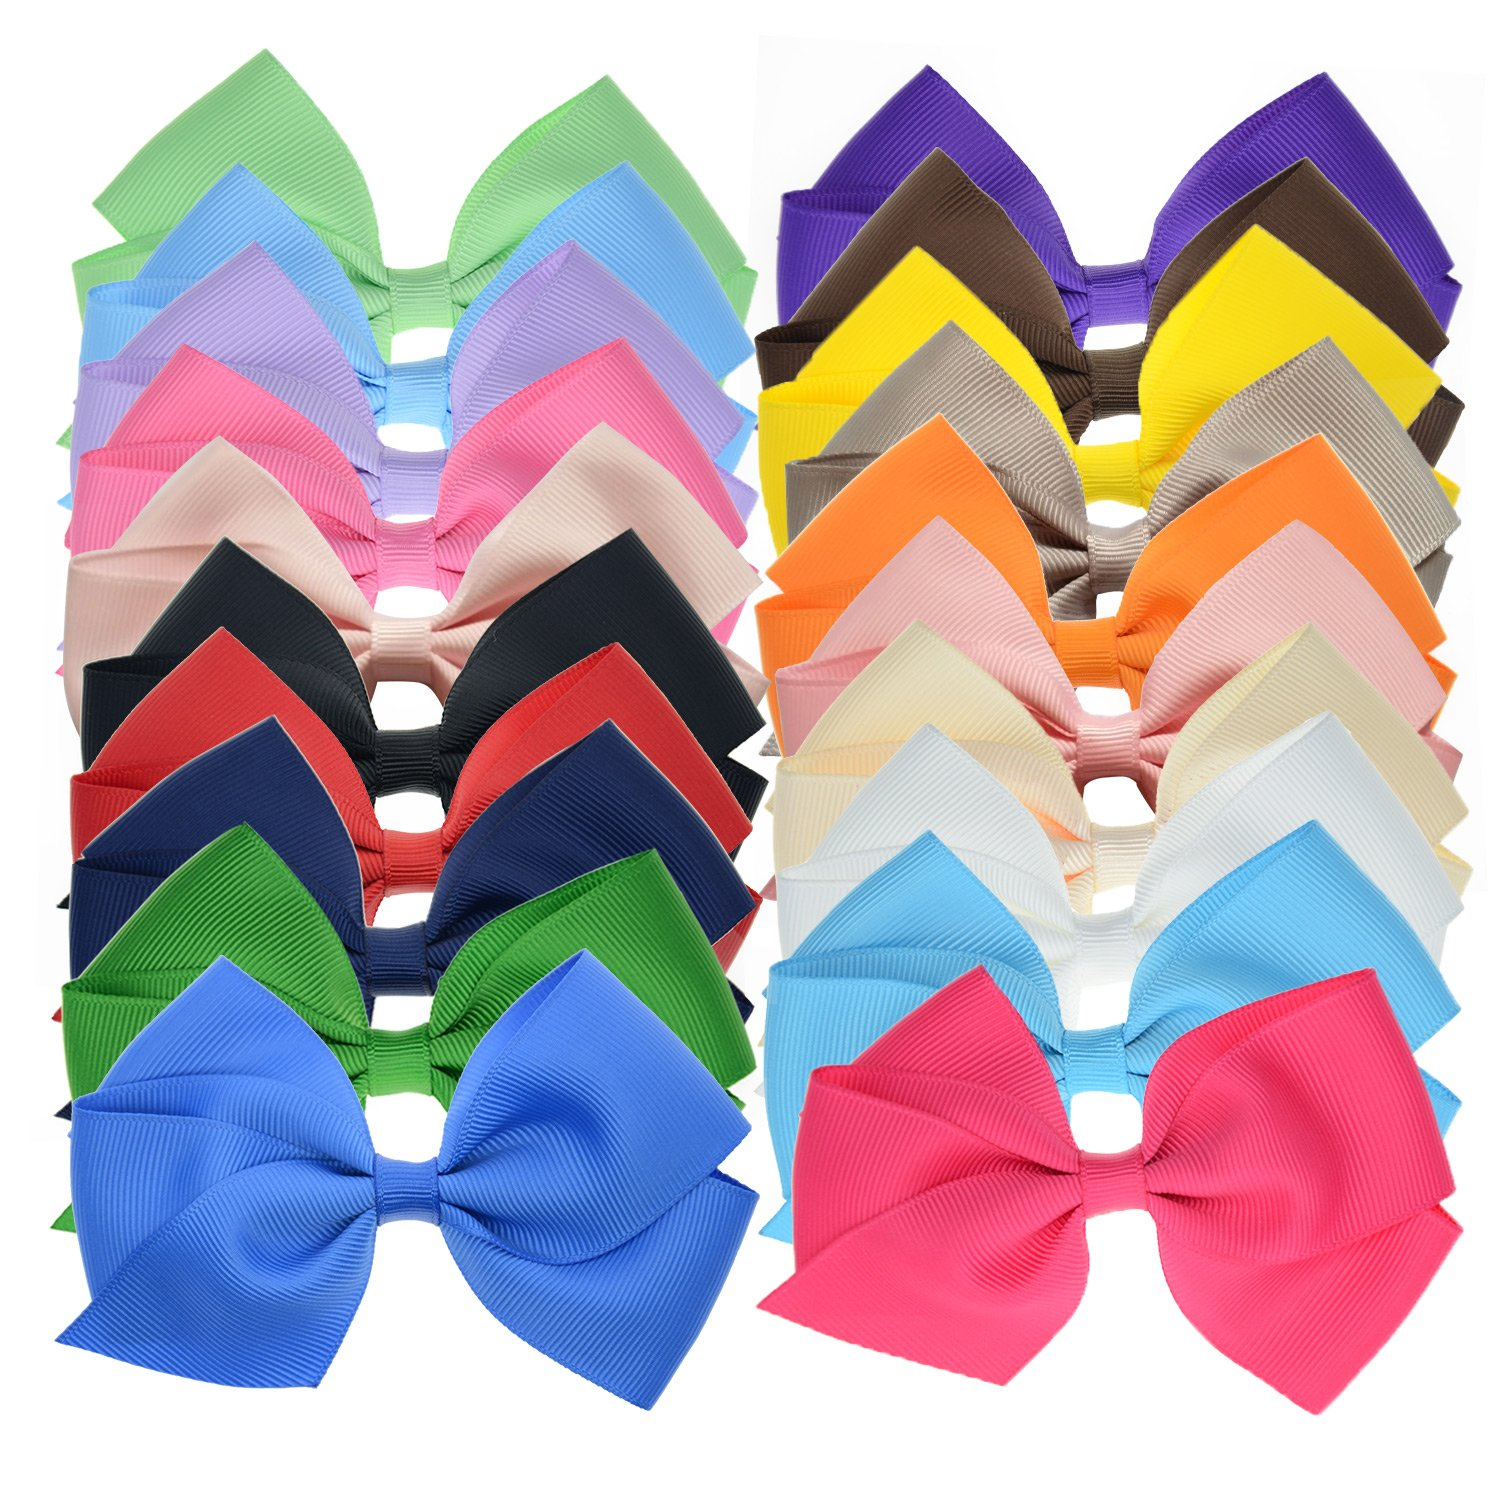 papercraft party garland hair bows sewing ASSORTED TINY BOWS Baby bows clothing trim diy Hair accessory supply